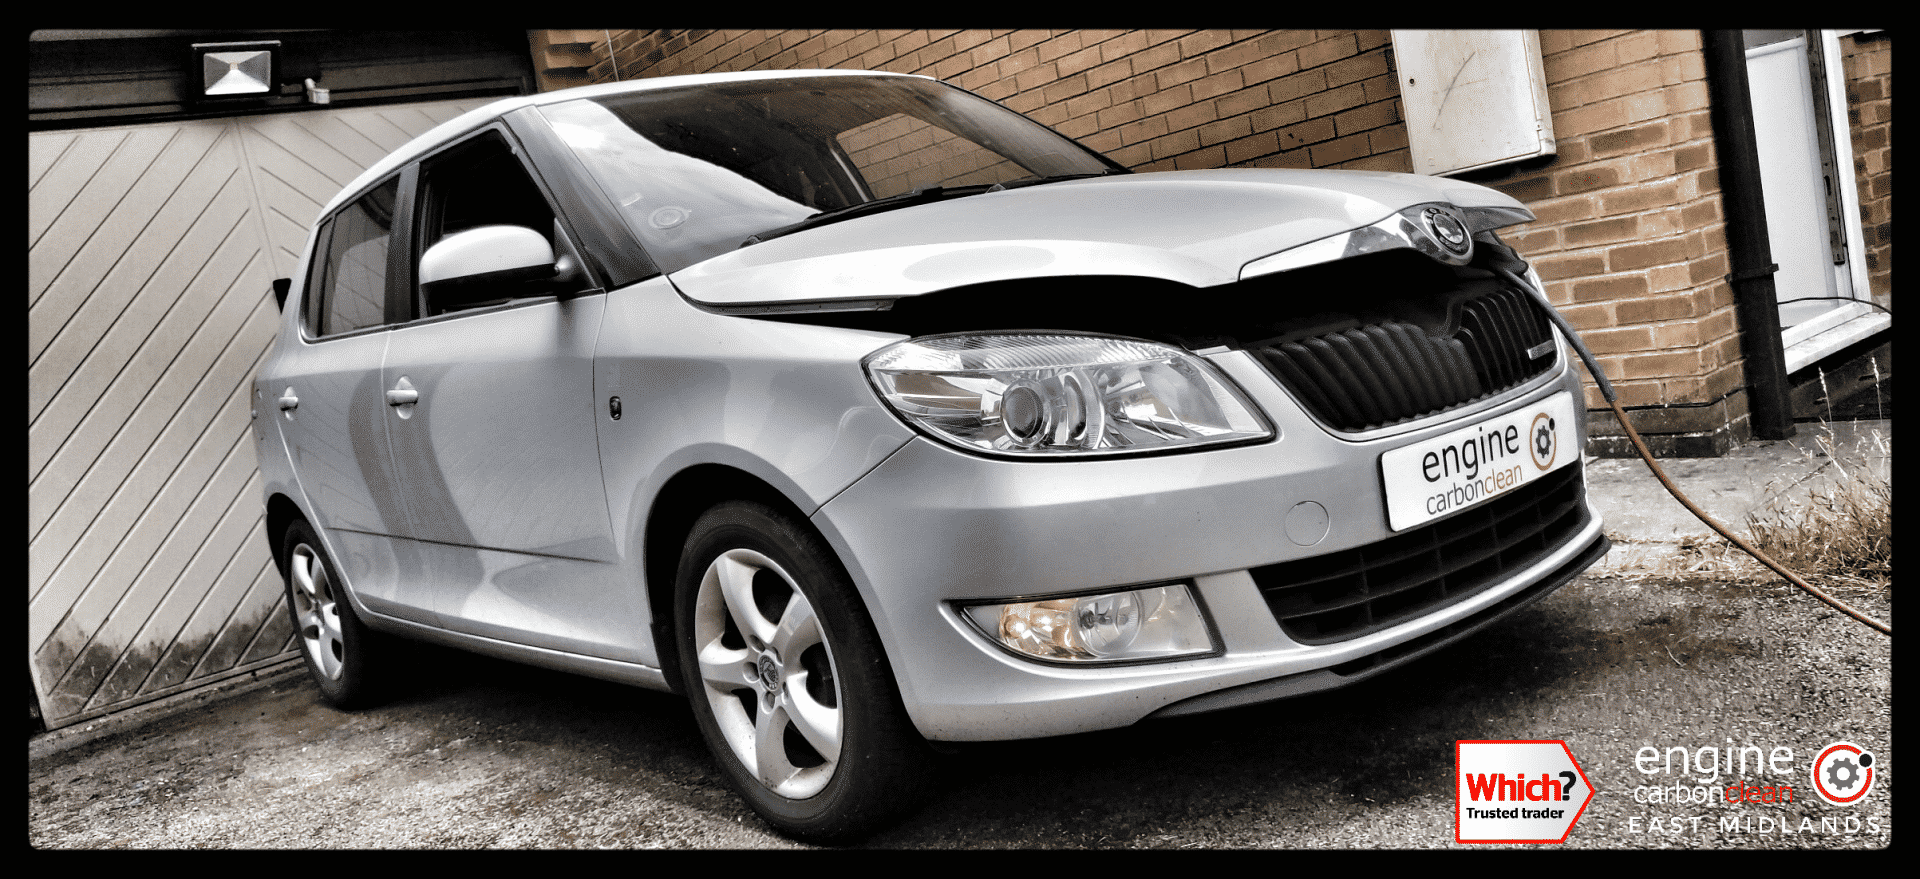 Turbo Boost Sensor and thermostat issues on this Skoda Fabia 1.2 (2012 - 112,944 miles)